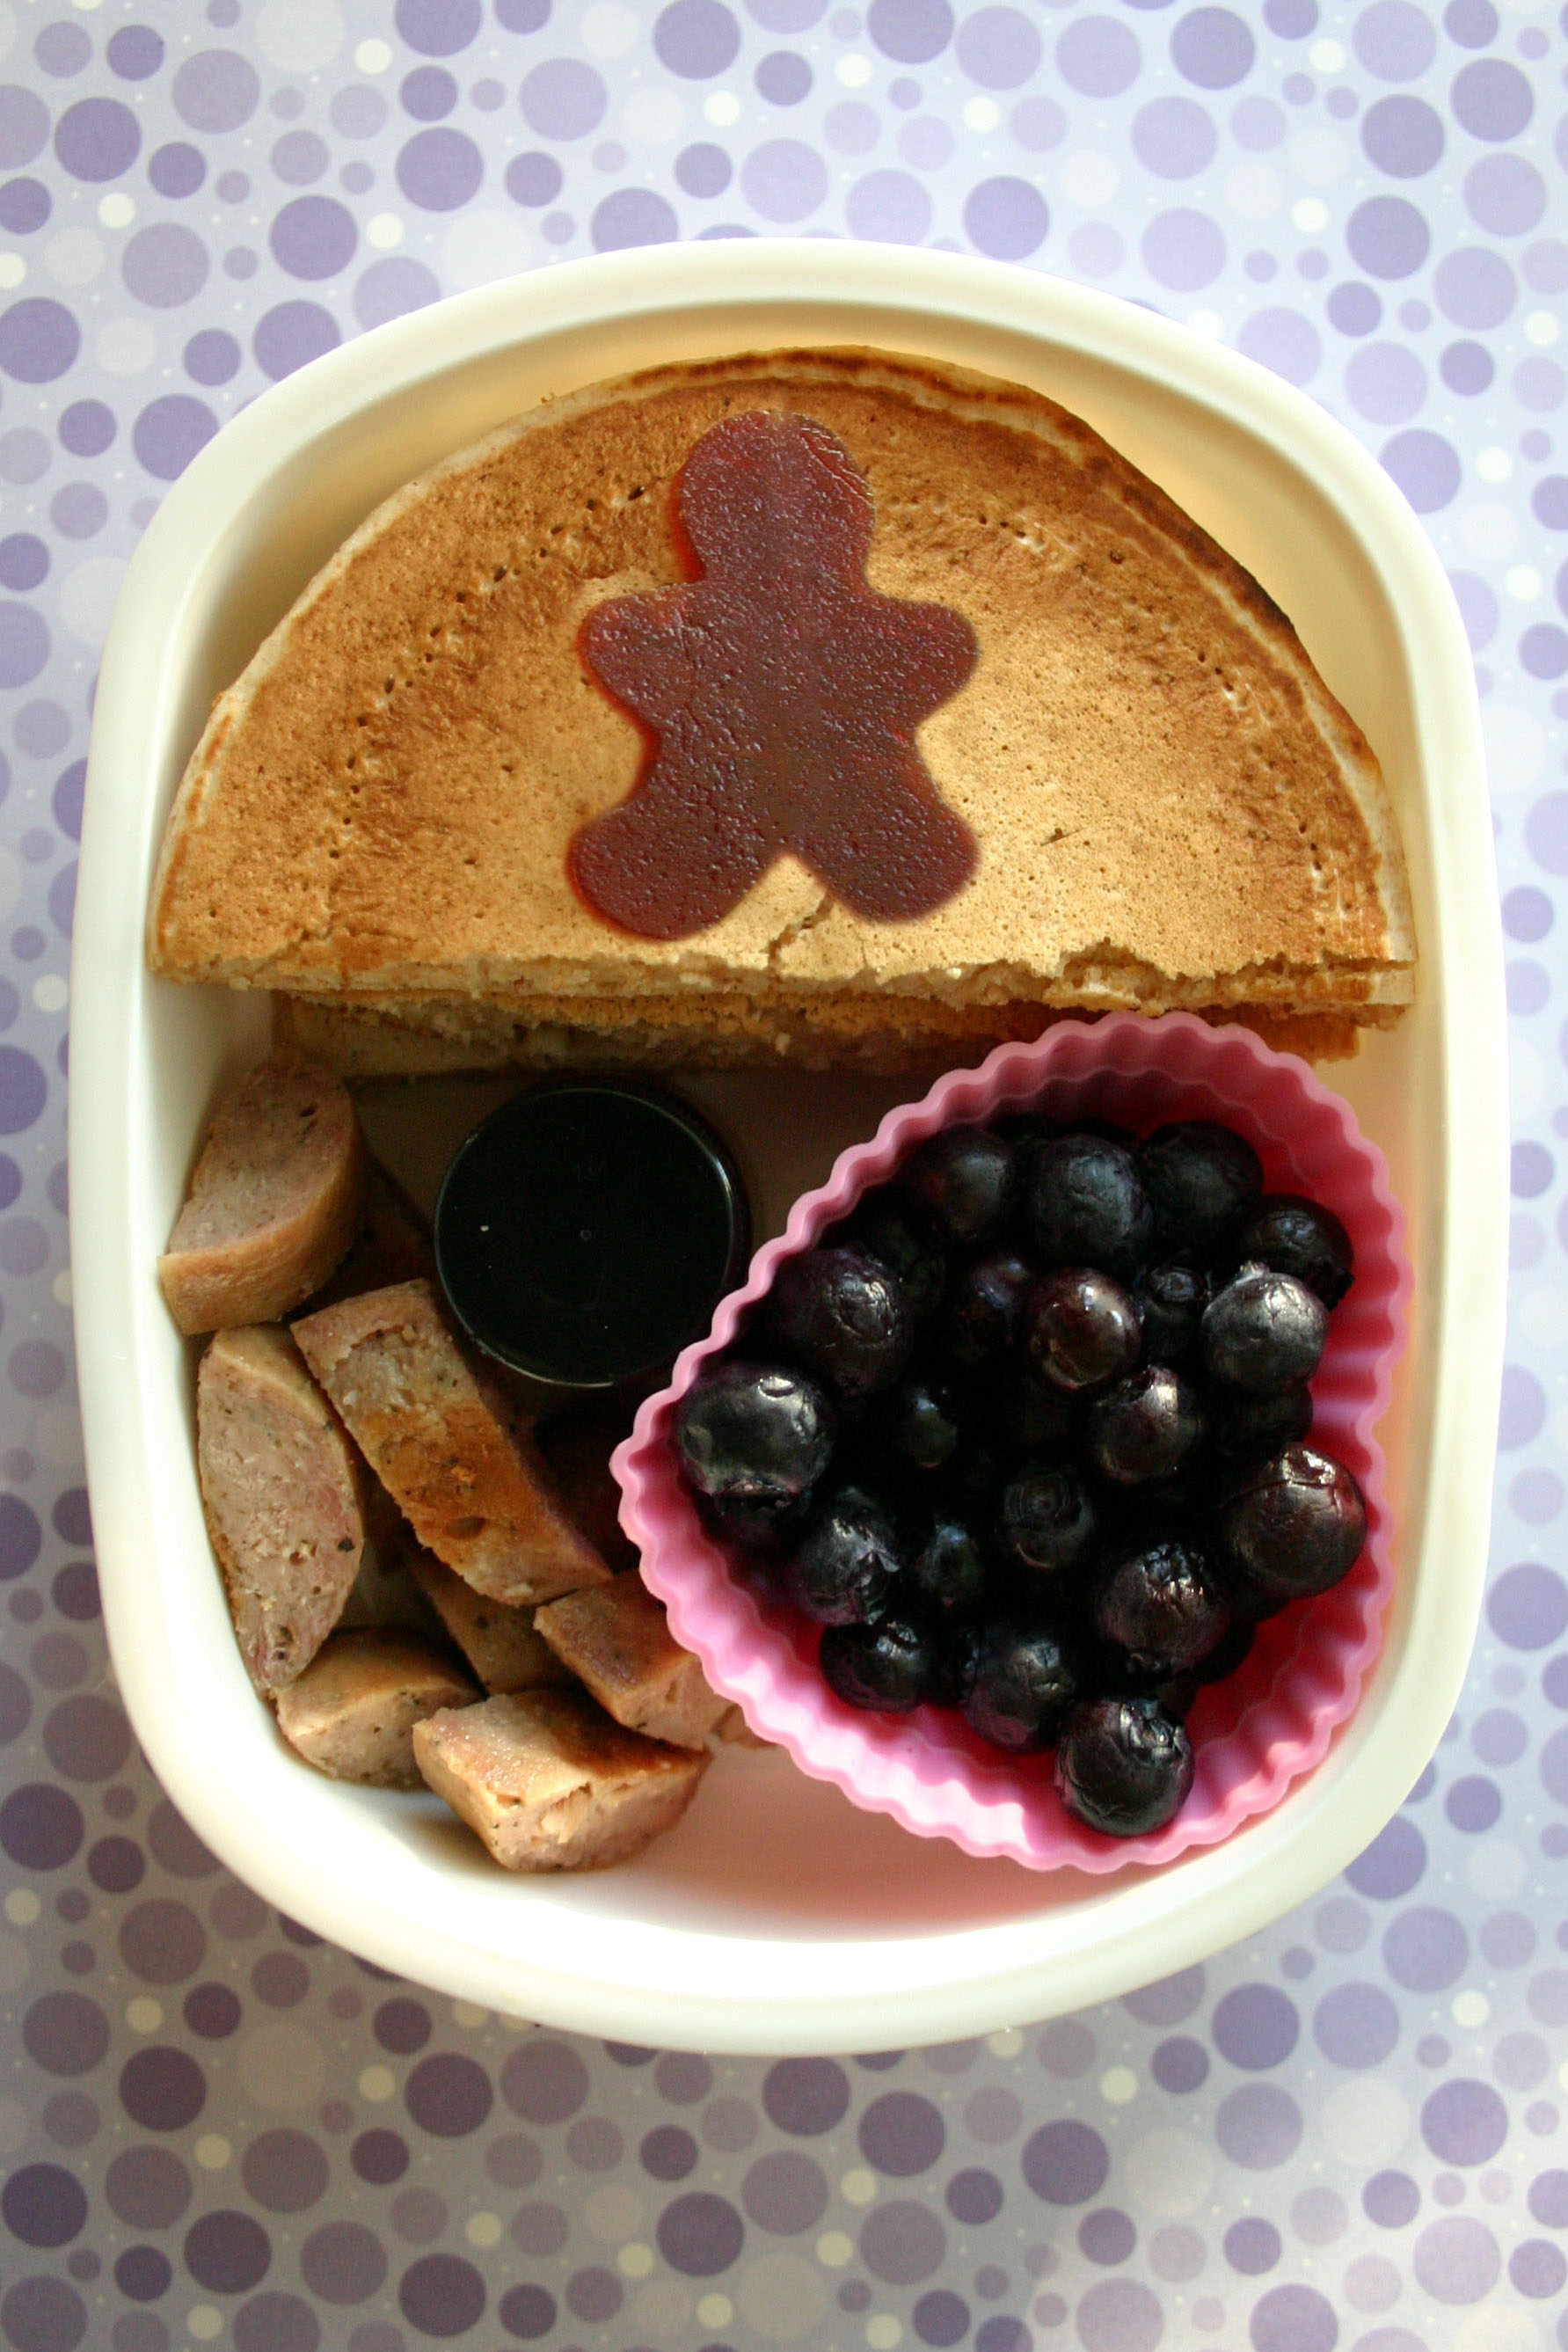 bento box breakfast pancakes berries